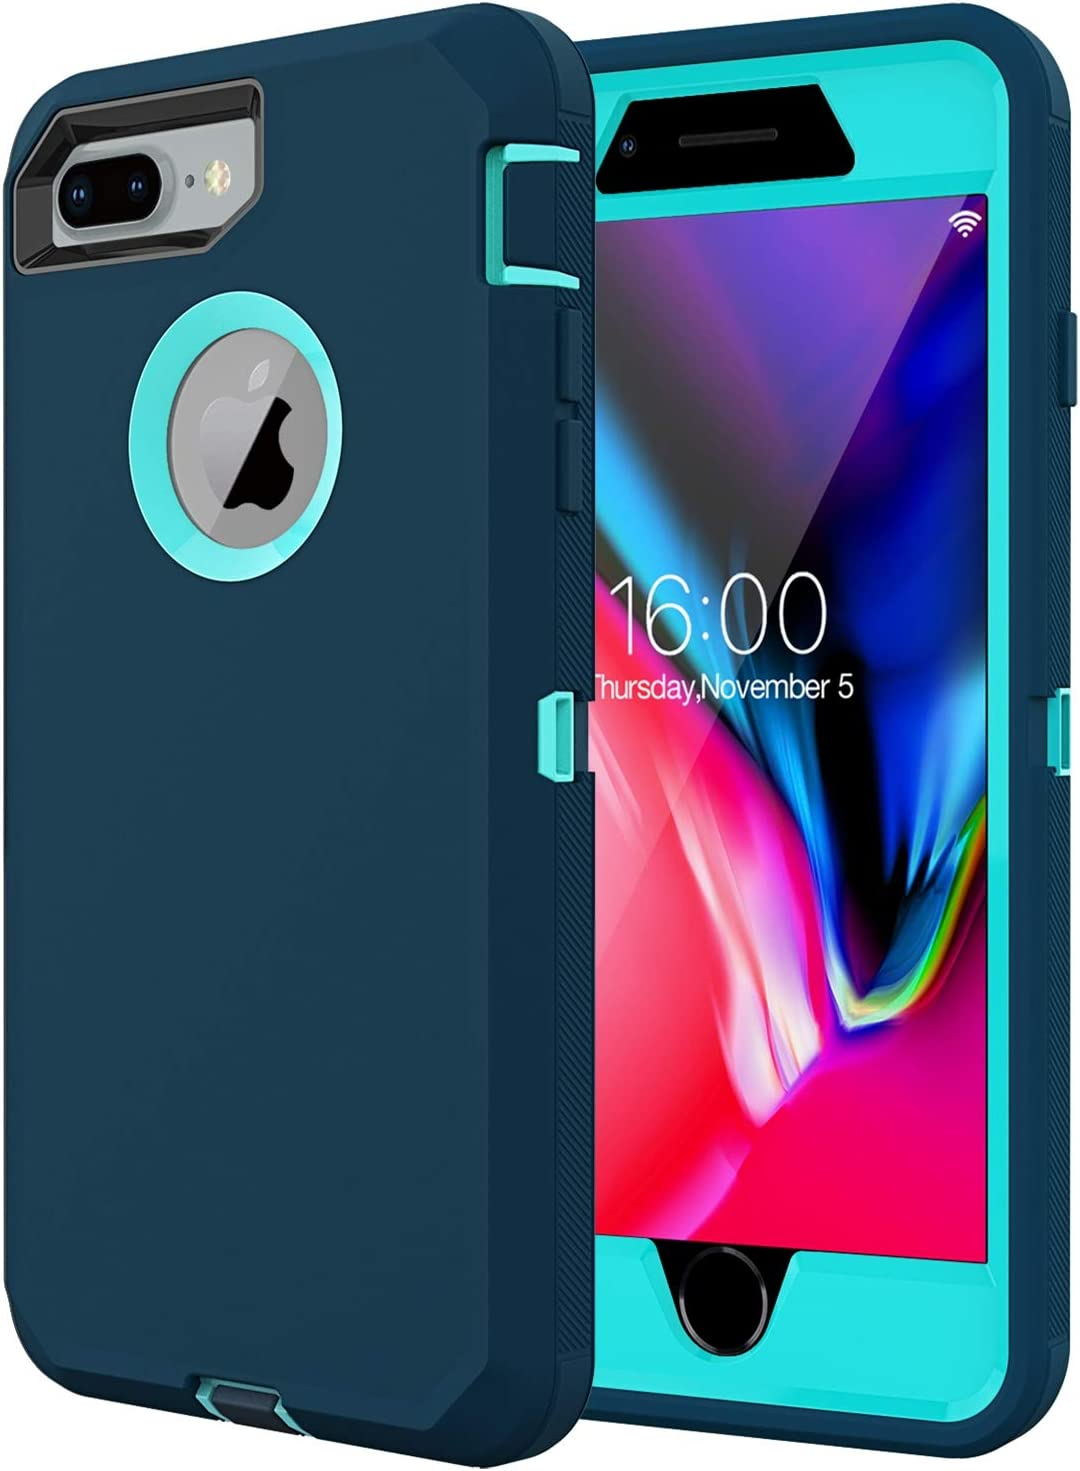 Diverbox For iPhone 8 plus Case, iPhone 7 plus Case Built-in screen protector, [Shockproof] [Dropproof] [Dust-Proof],Heavy Duty Protection Phone Case Cover for Apple iPhone 8 plus & 7 Plus (Turquoise)